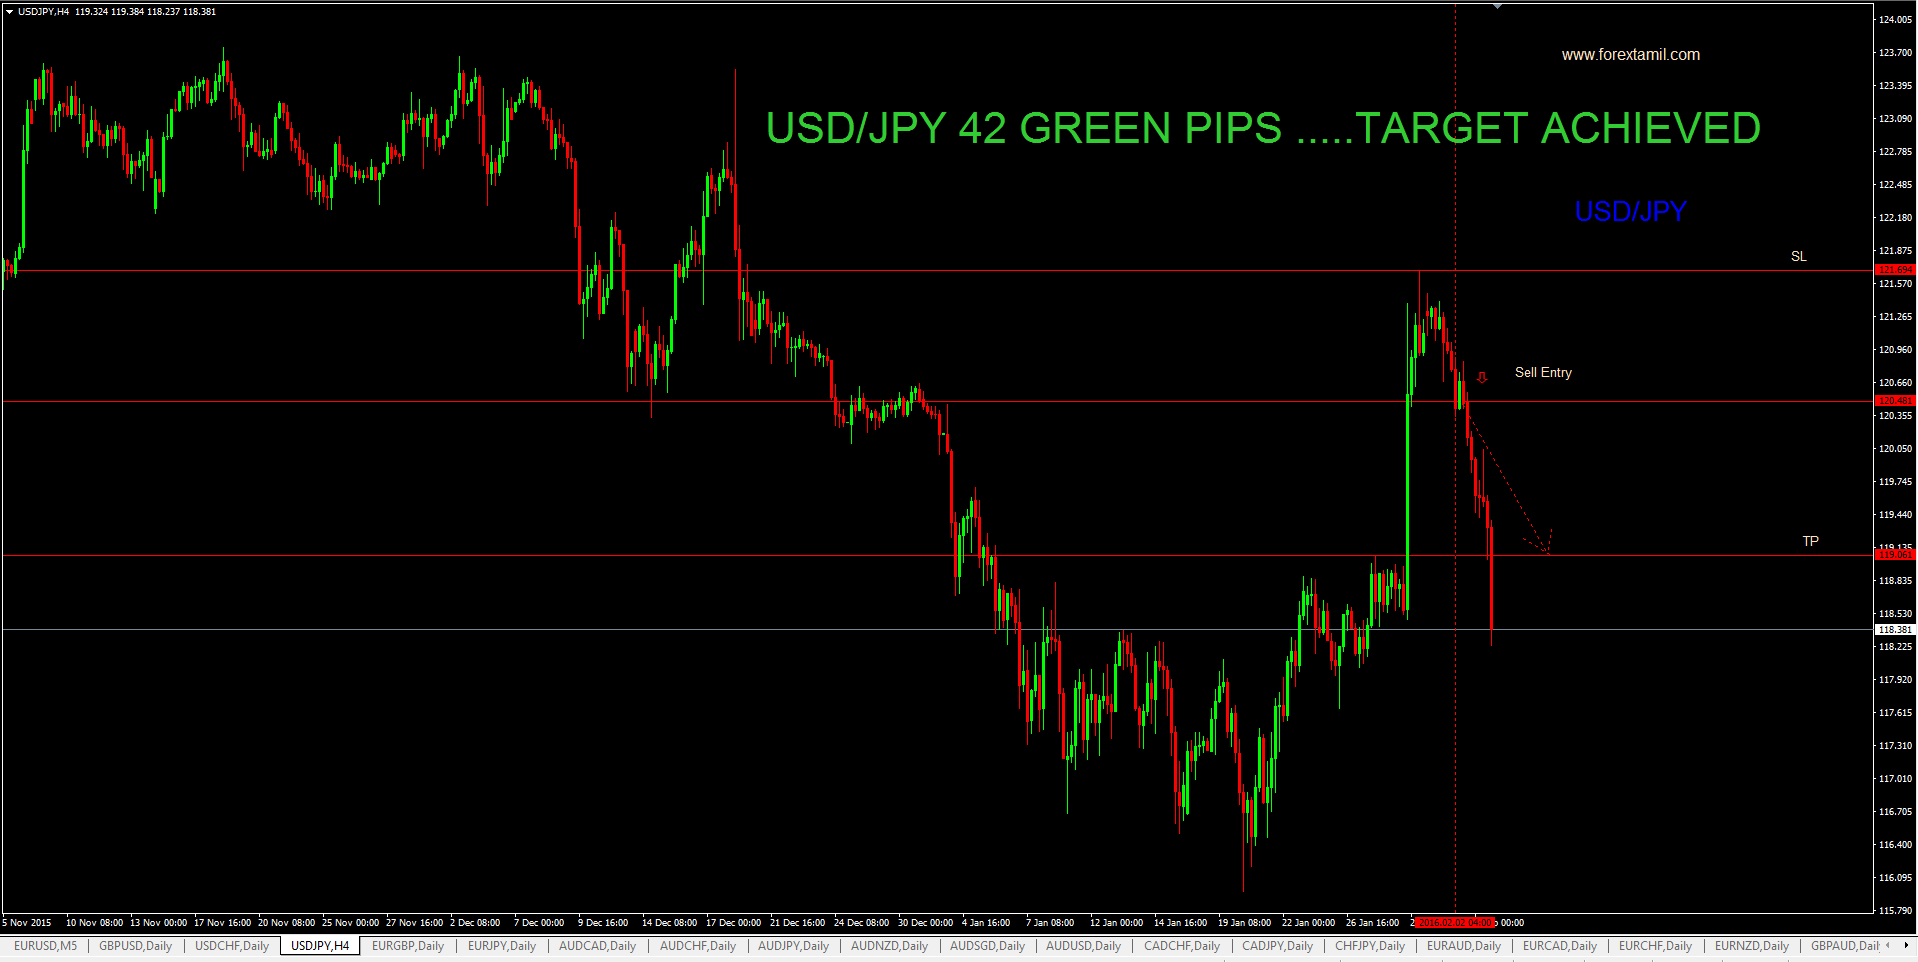 SURE SHOT SIGNAL RESULT: USD/JPY 143 GREEN PIPS …..TARGET ACHIEVED